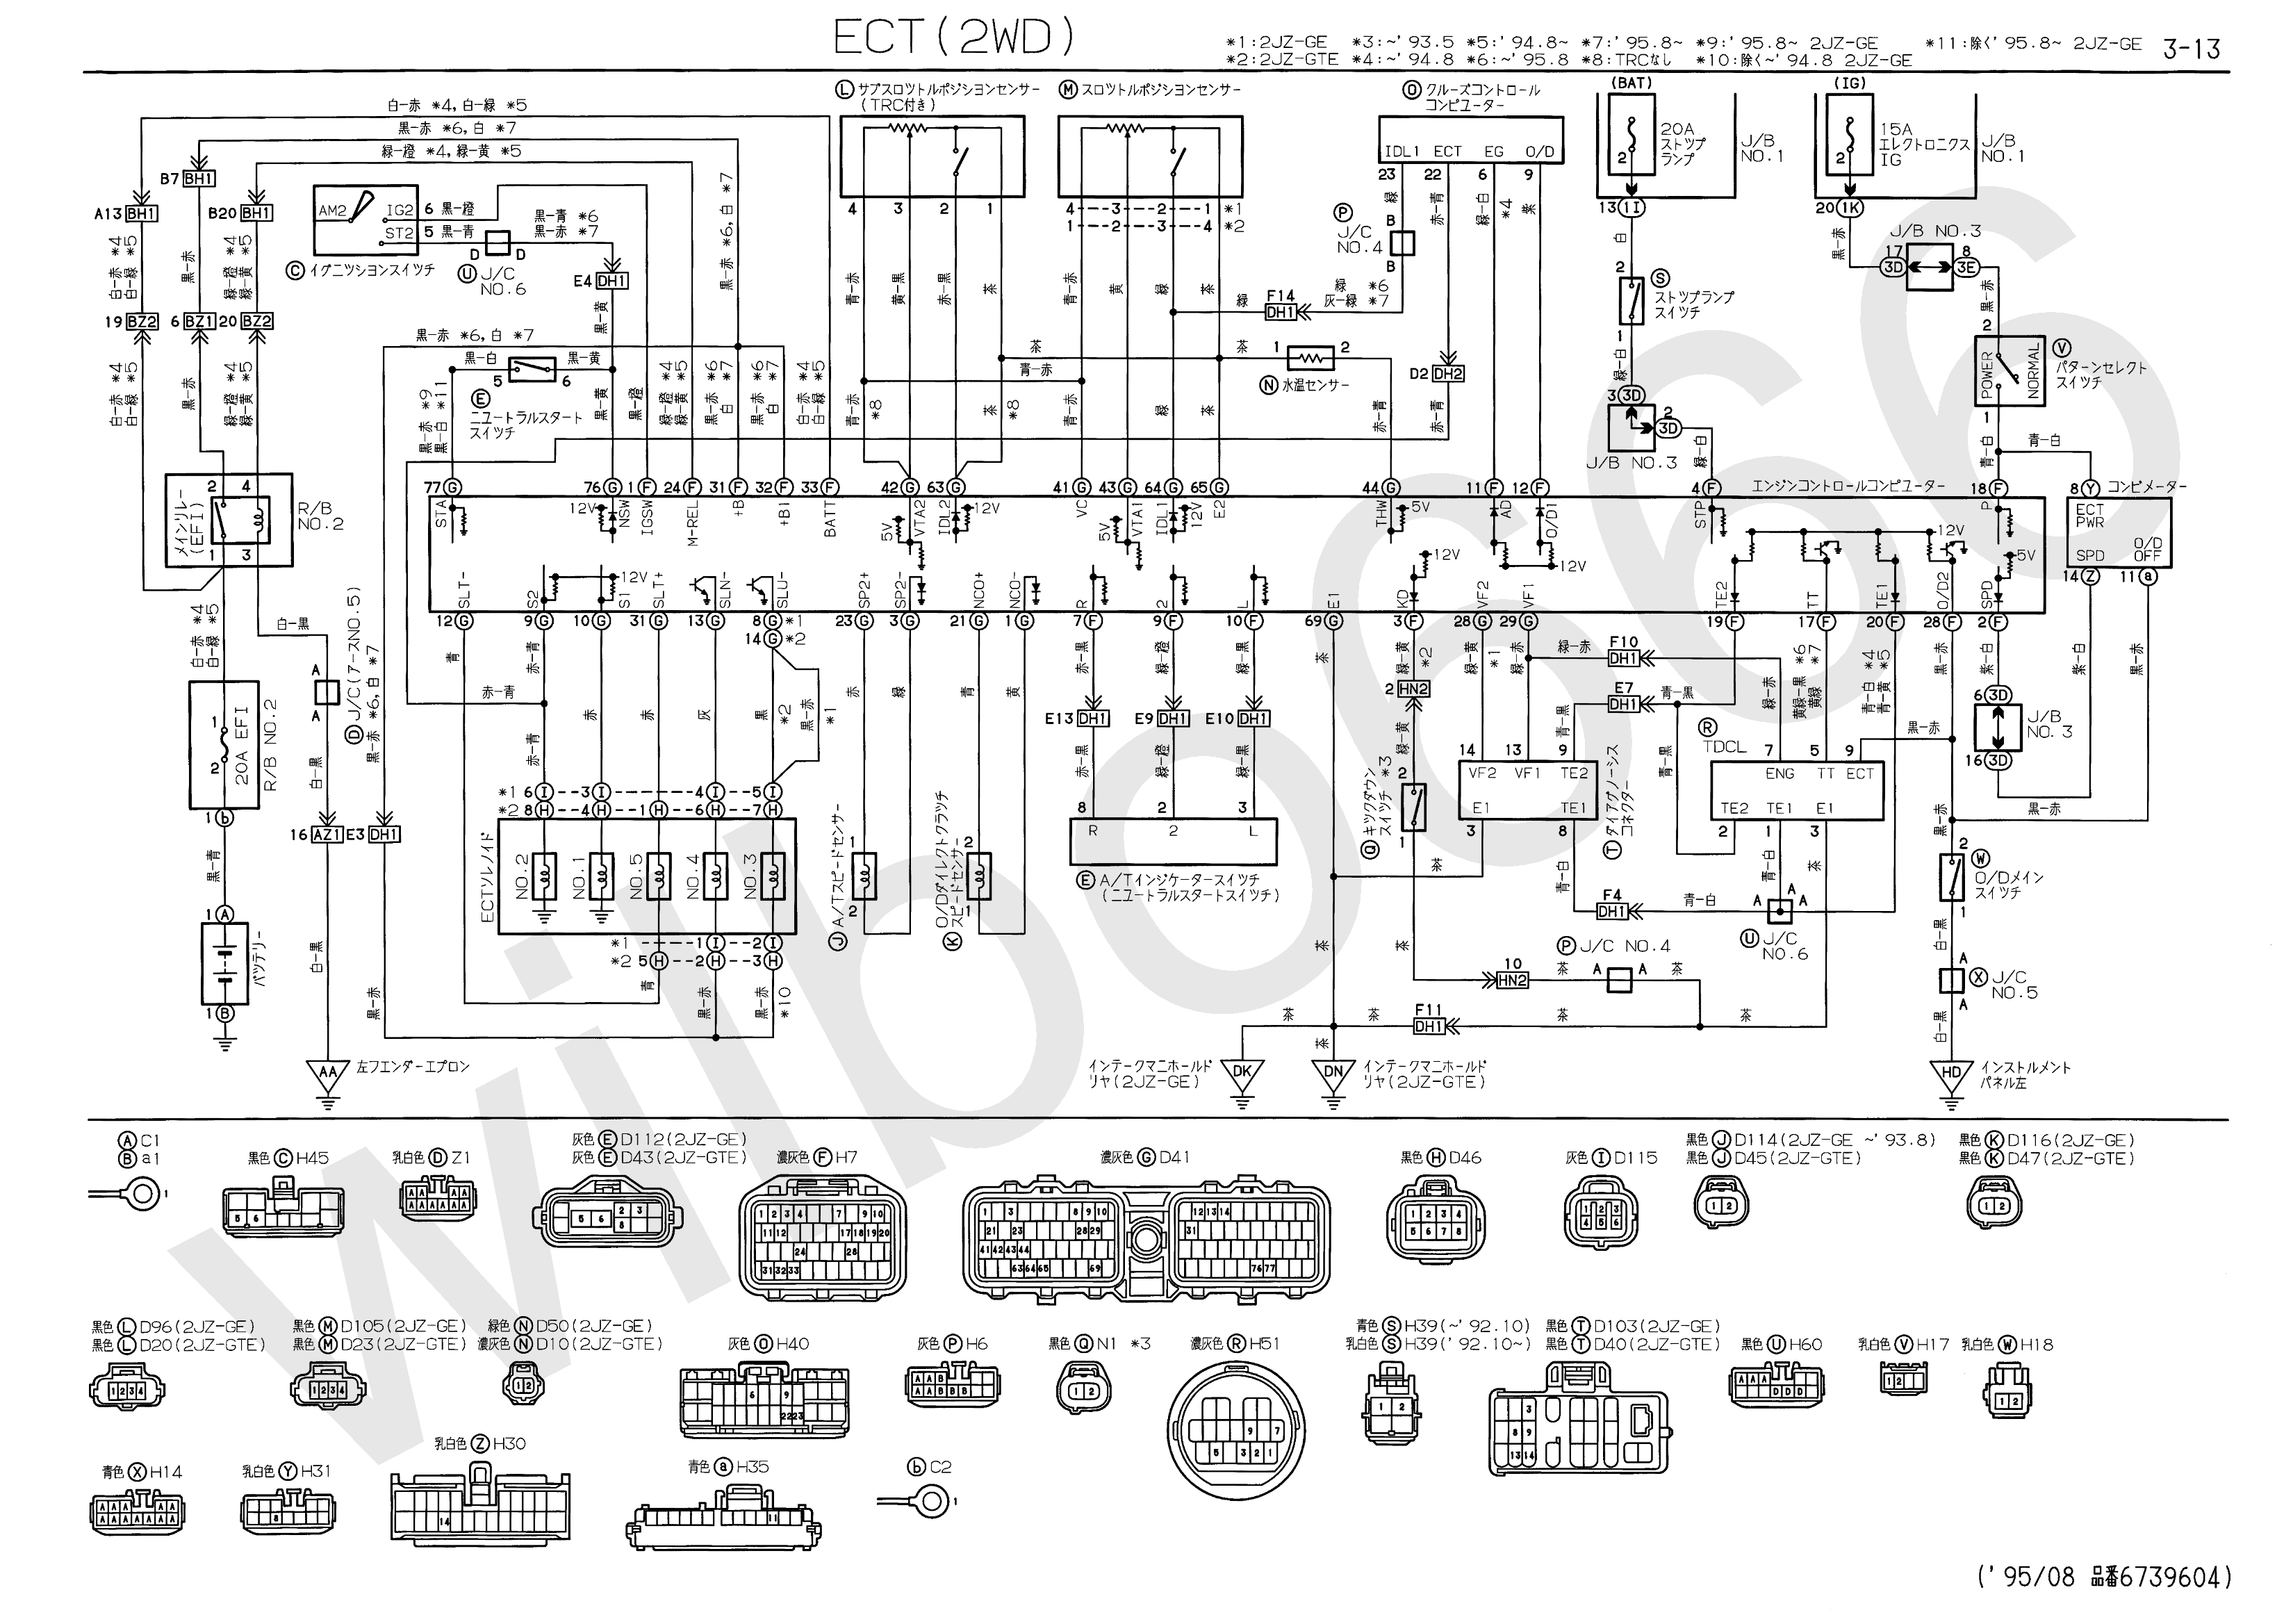 Accel Dfi Wiring Diagram as well Ignition Coil Wiring Diagram as well Single Phase Motor With Capacitor Forward And Reverse Wiring Diagram besides P 0900c152801daa50 in addition Wiring Diagram For 95 F150. on ford tachometer wiring diagram